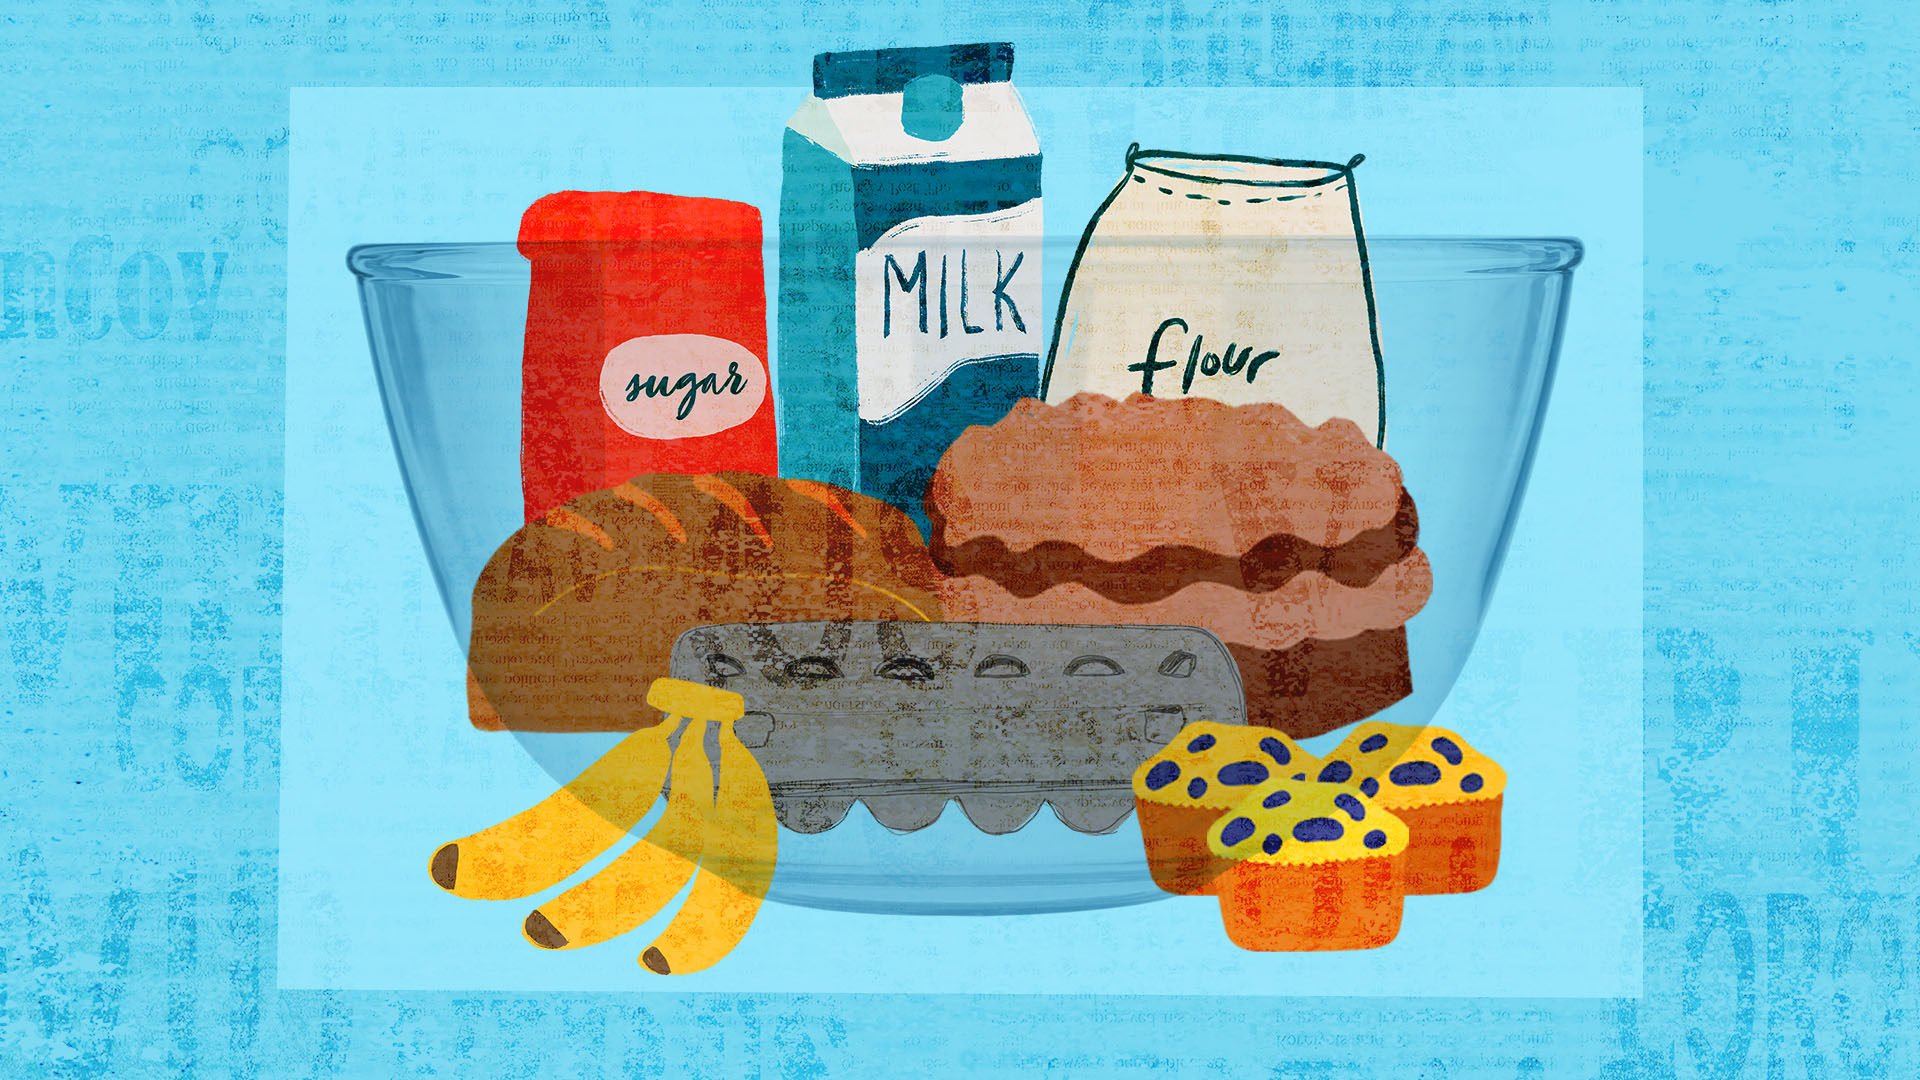 illustration of baking ingredients in a mixing bowl on a blue background